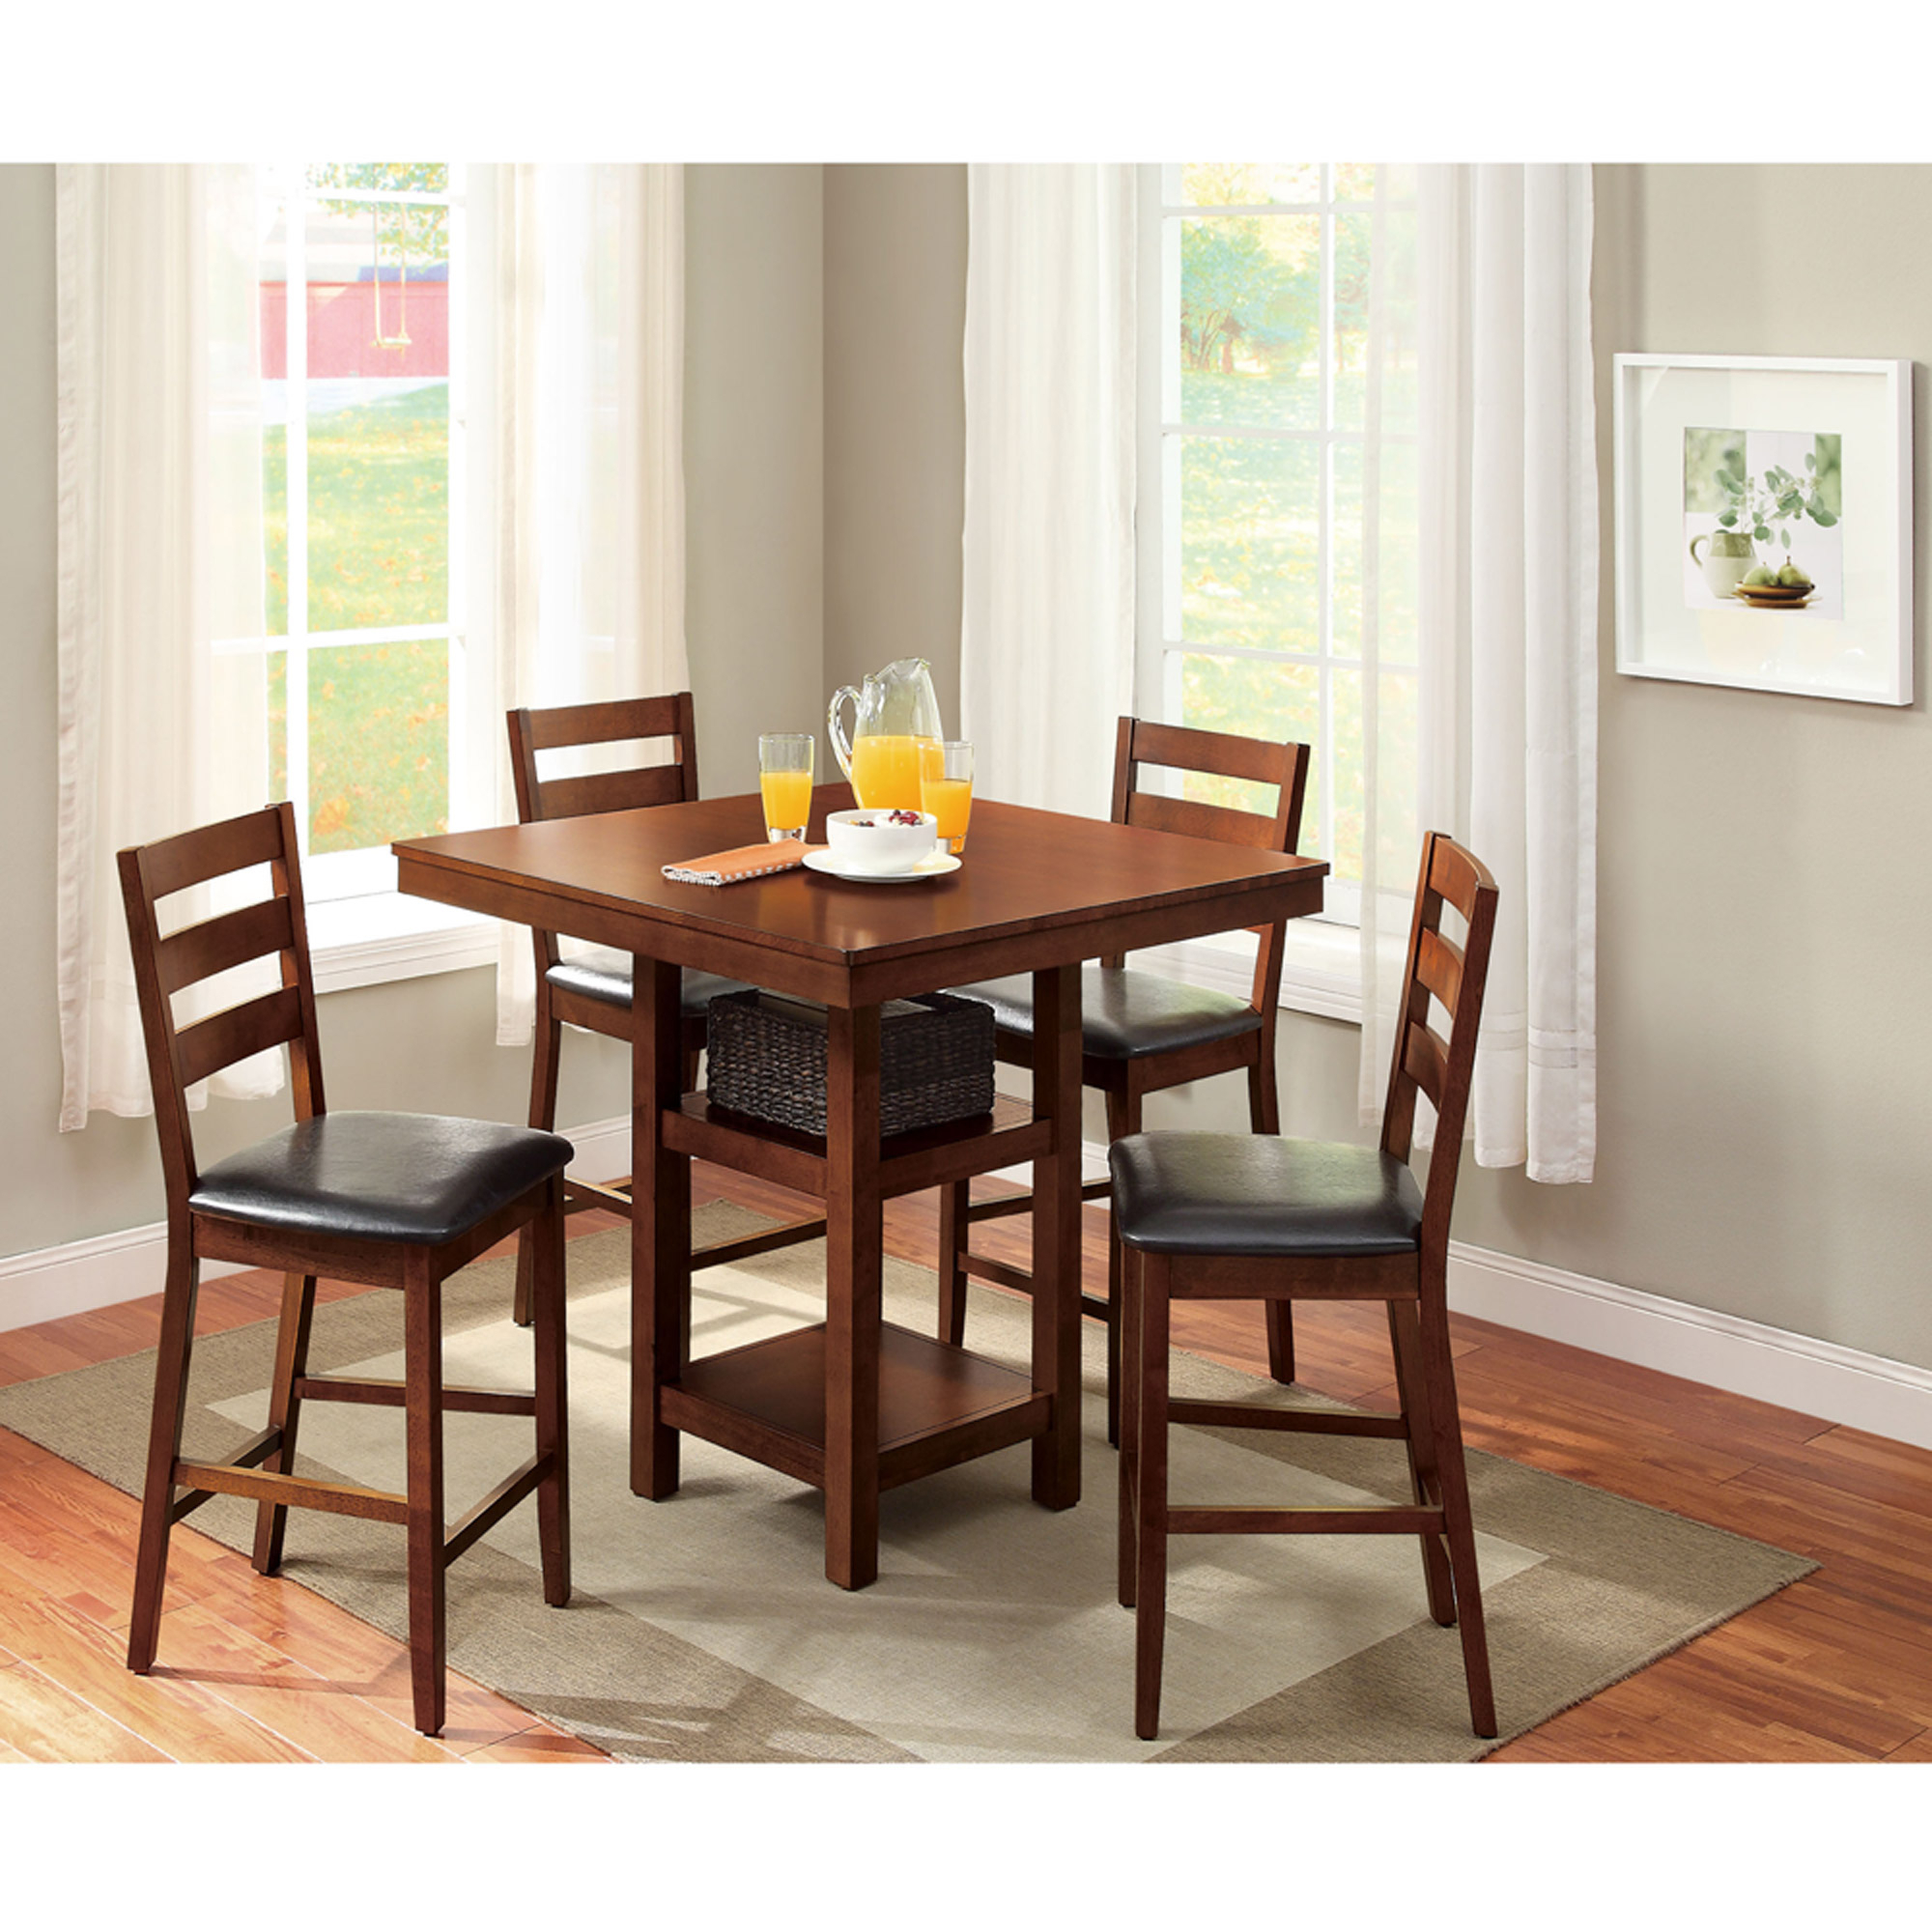 Current Better Homes & Gardens Dalton Park 5 Piece Counter Height Dining Set Regarding 5 Piece Dining Sets (View 13 of 25)